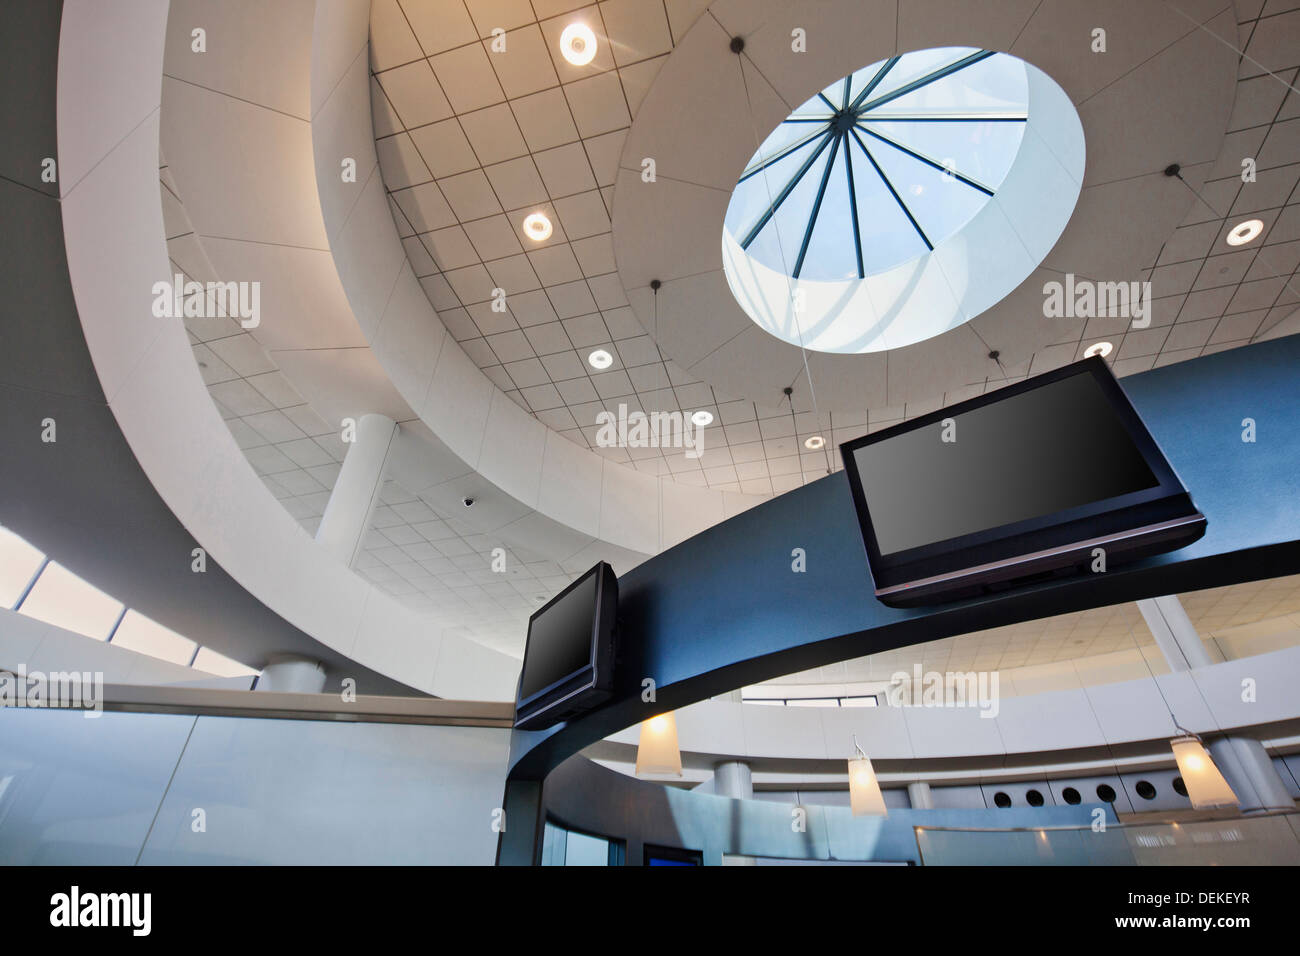 Recessed lights and skylight in ceiling - Stock Image